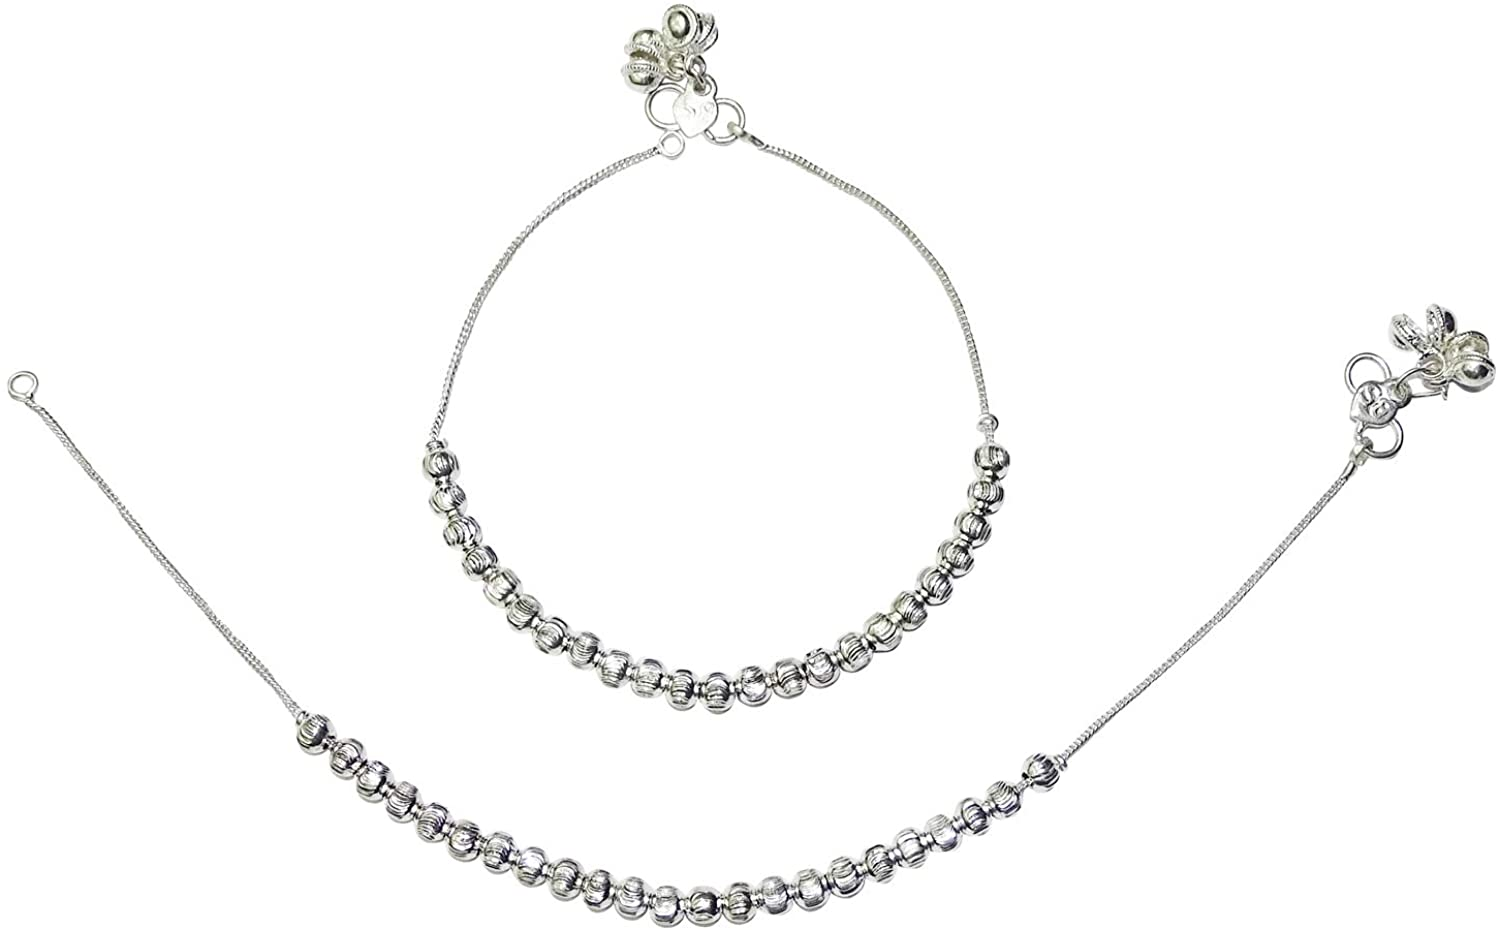 Ghoomar Traditional Anklet Women's Indian Payal Foot Jewelry Silver Tone Metal Ankle Bracelets Gift for Mom